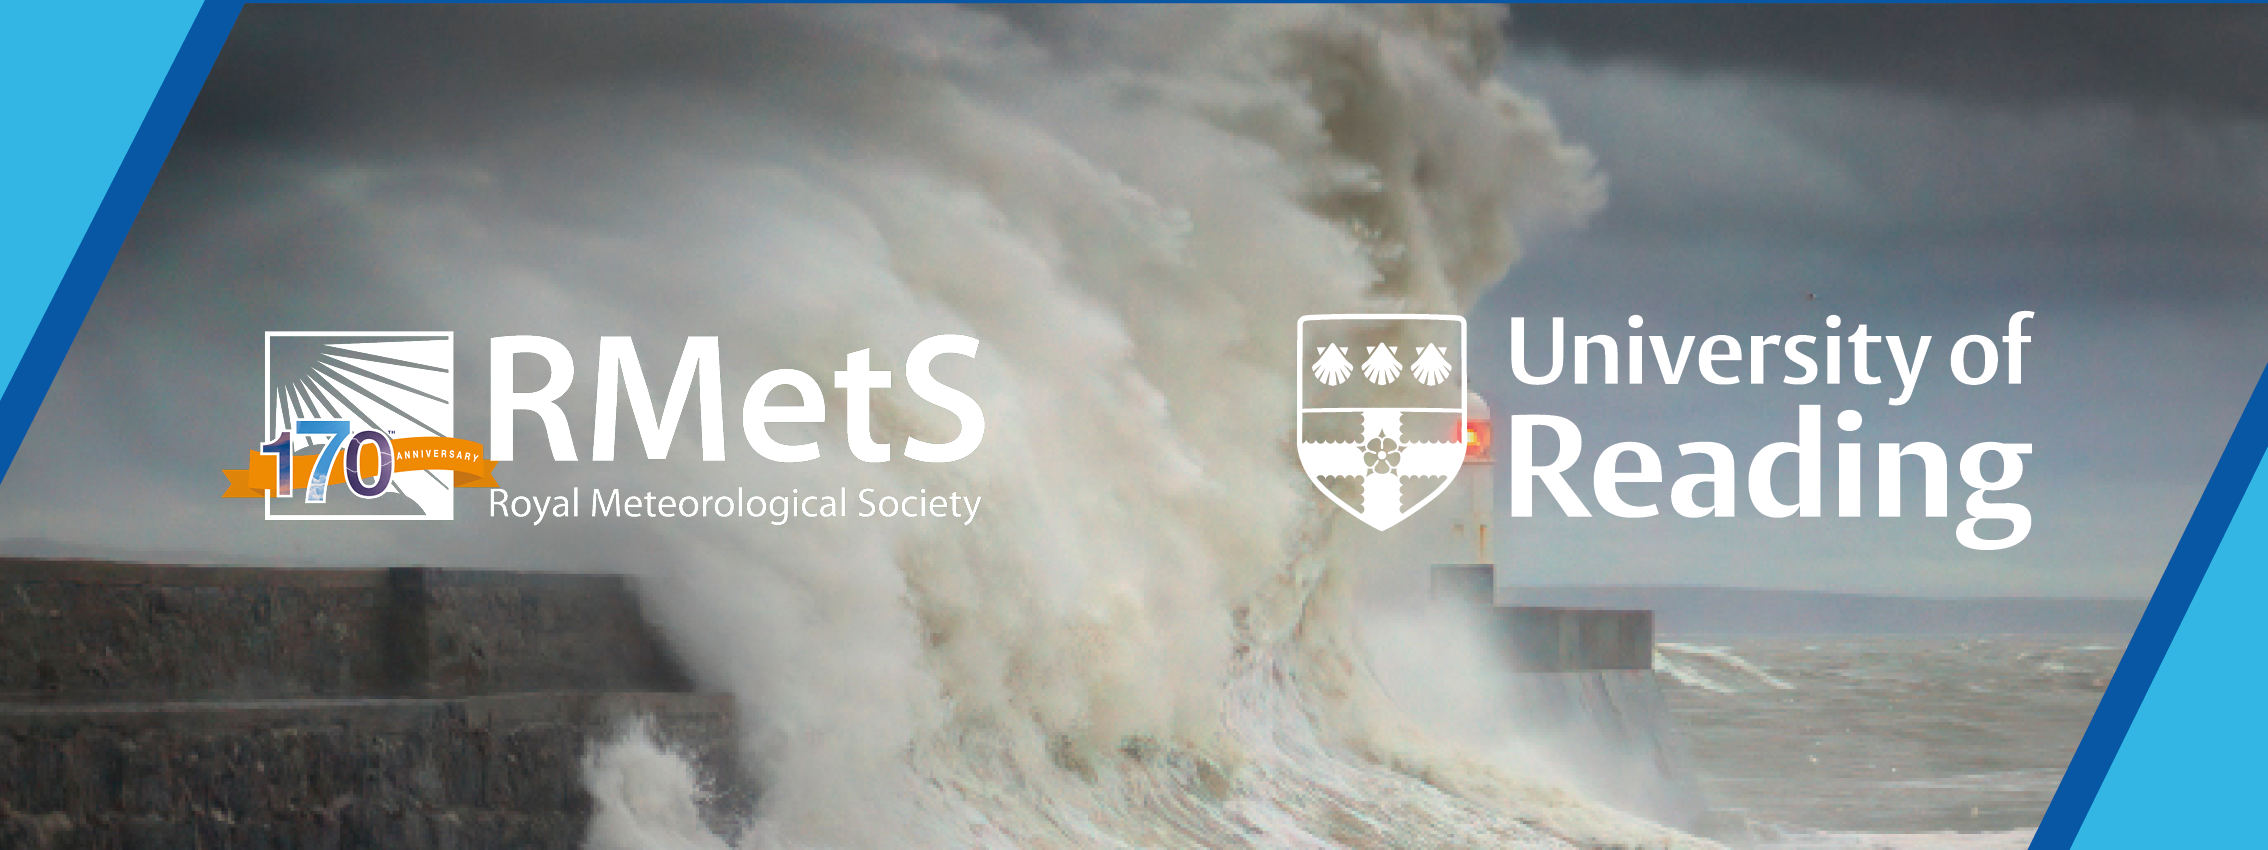 Event banner showing storm wave and RMetS and University of Reading logos